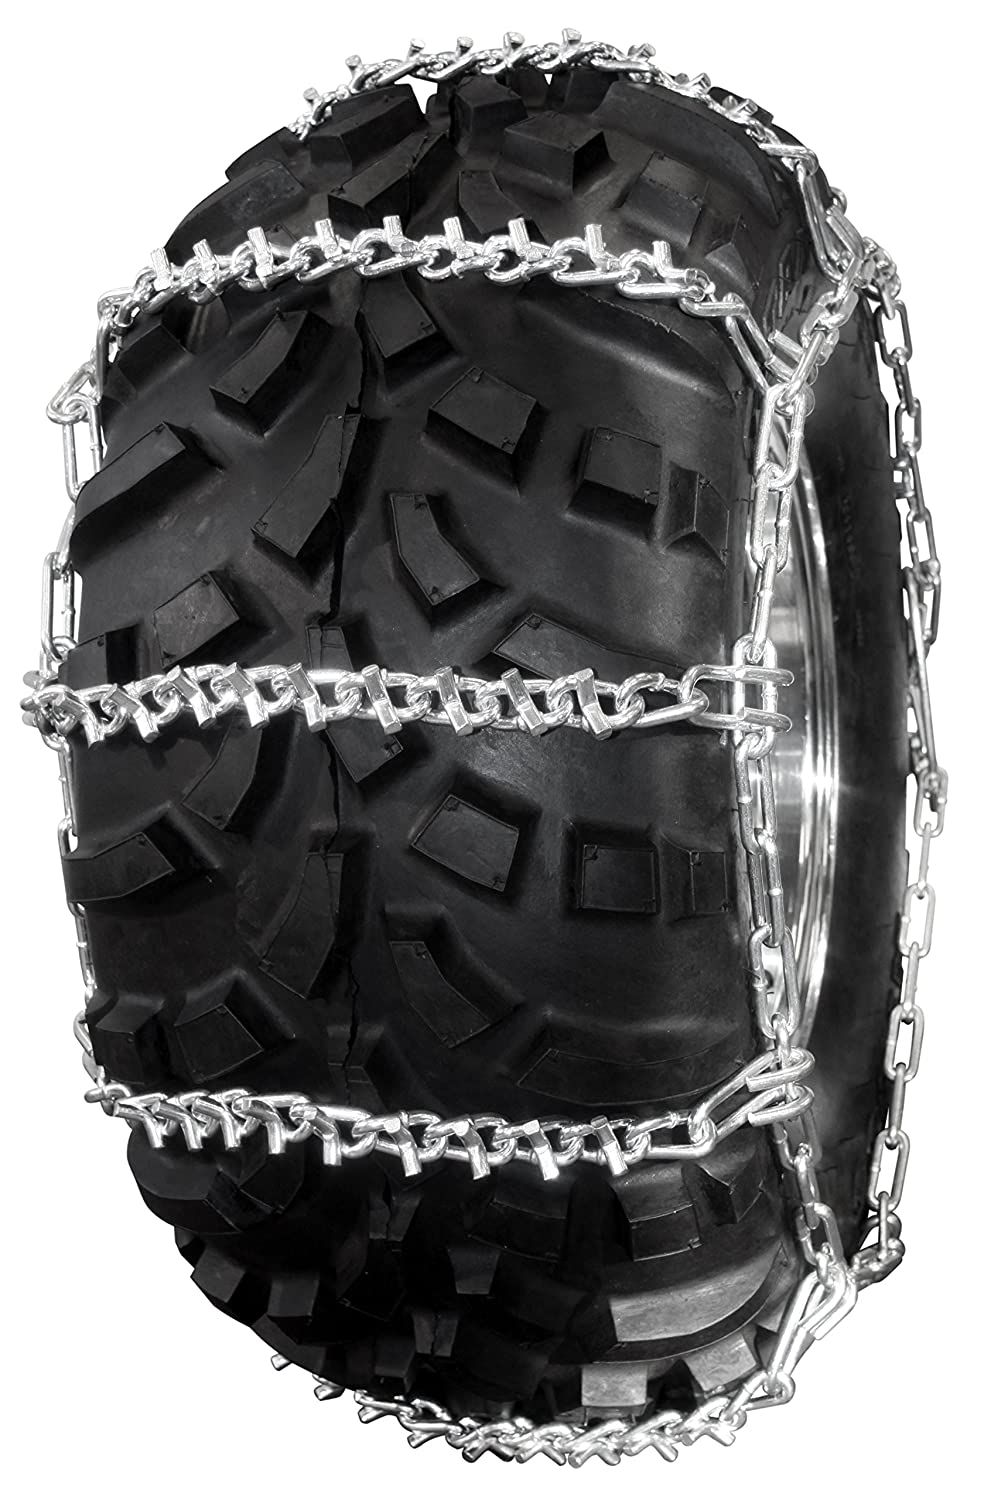 V-Bar Reinforced 4 Link Spacing Ladder Style ATV Traction Chain for 2 tires PAIR ICC ATV323